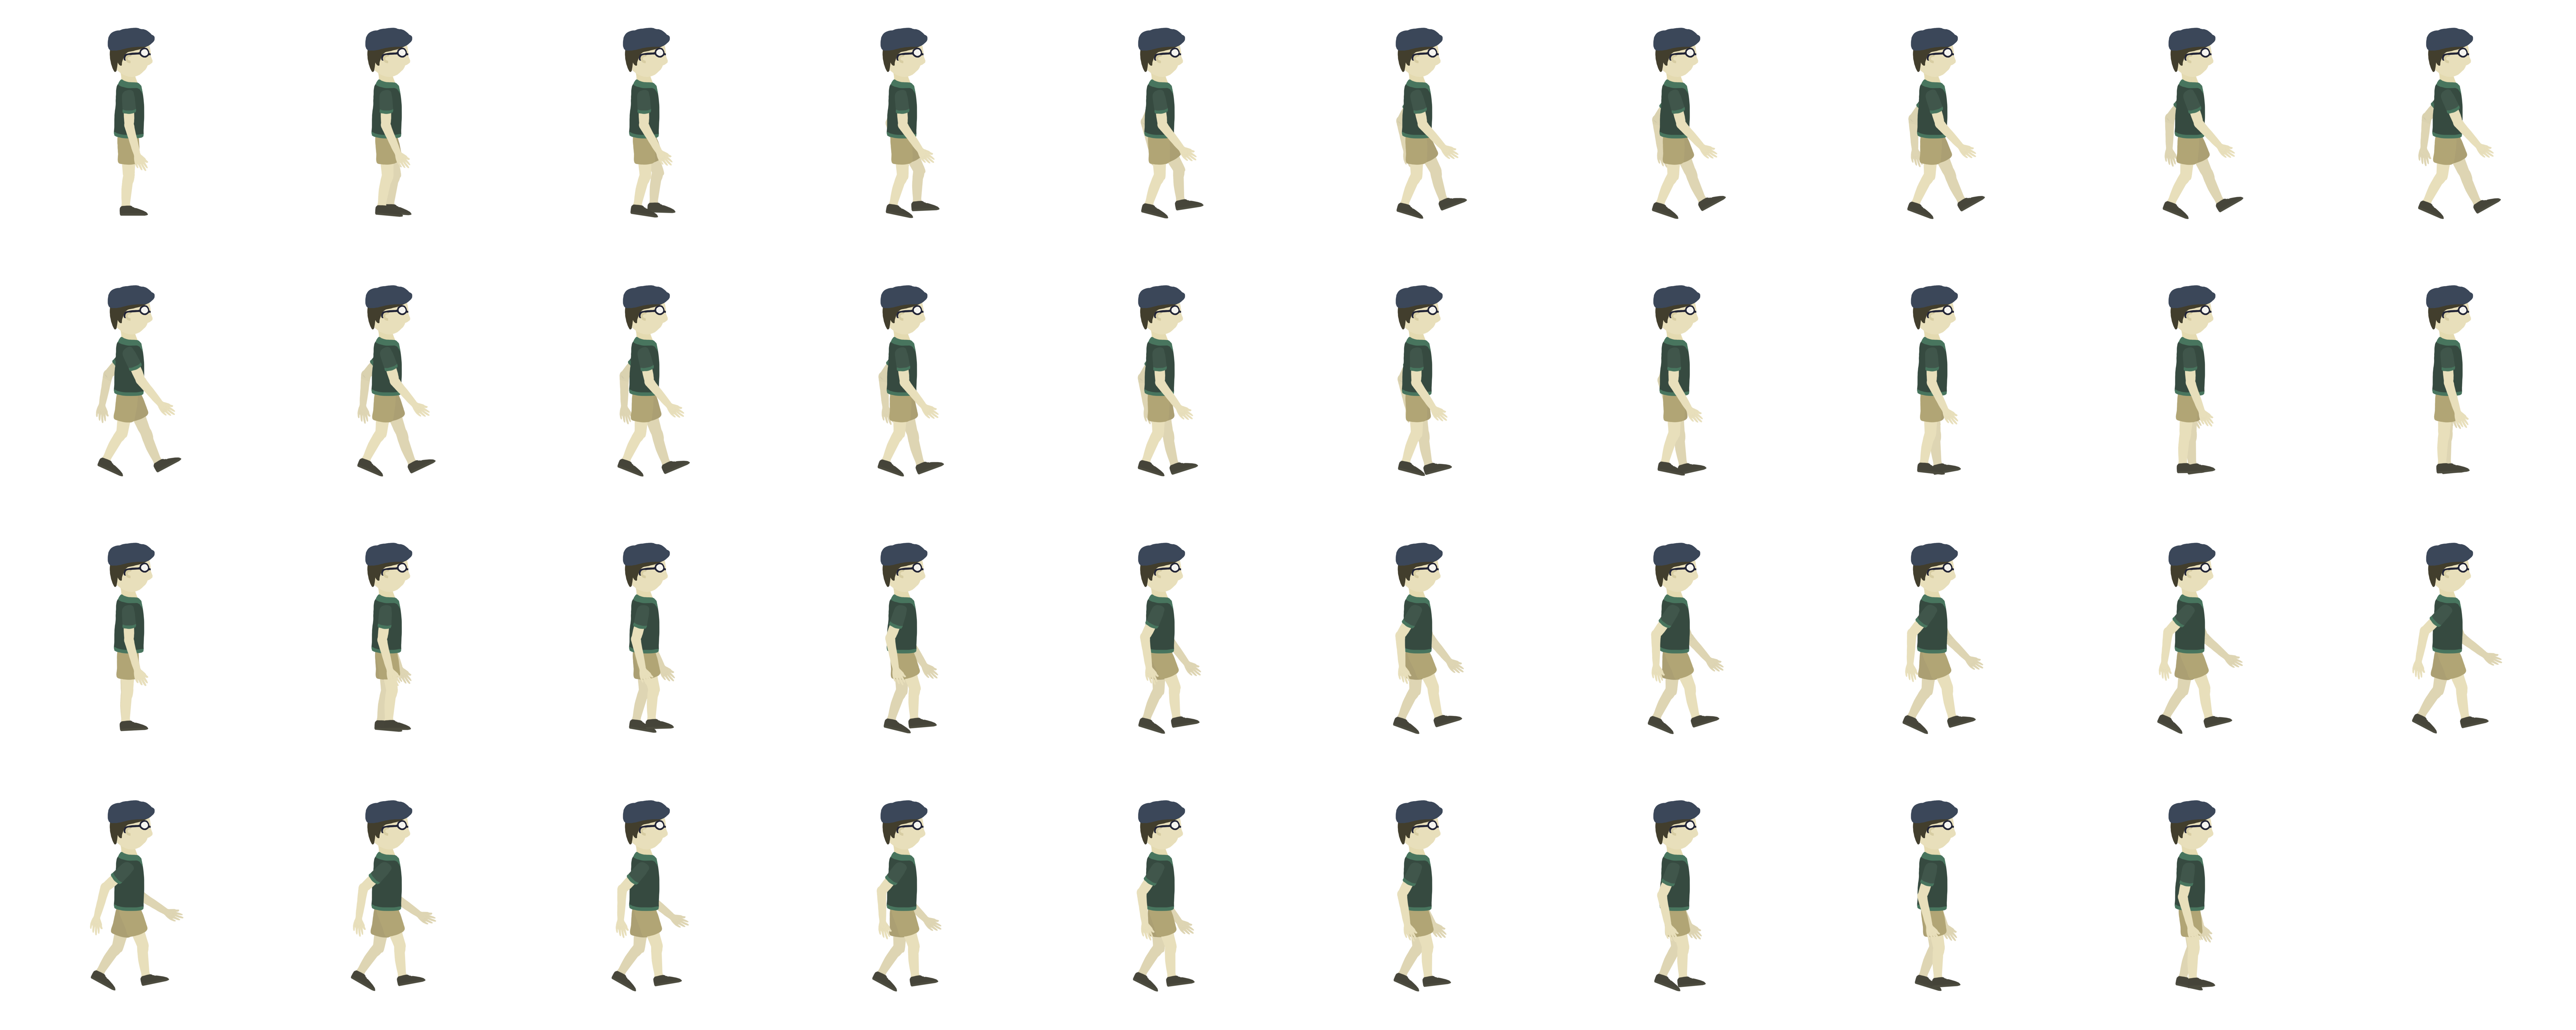 Character Walk Animation